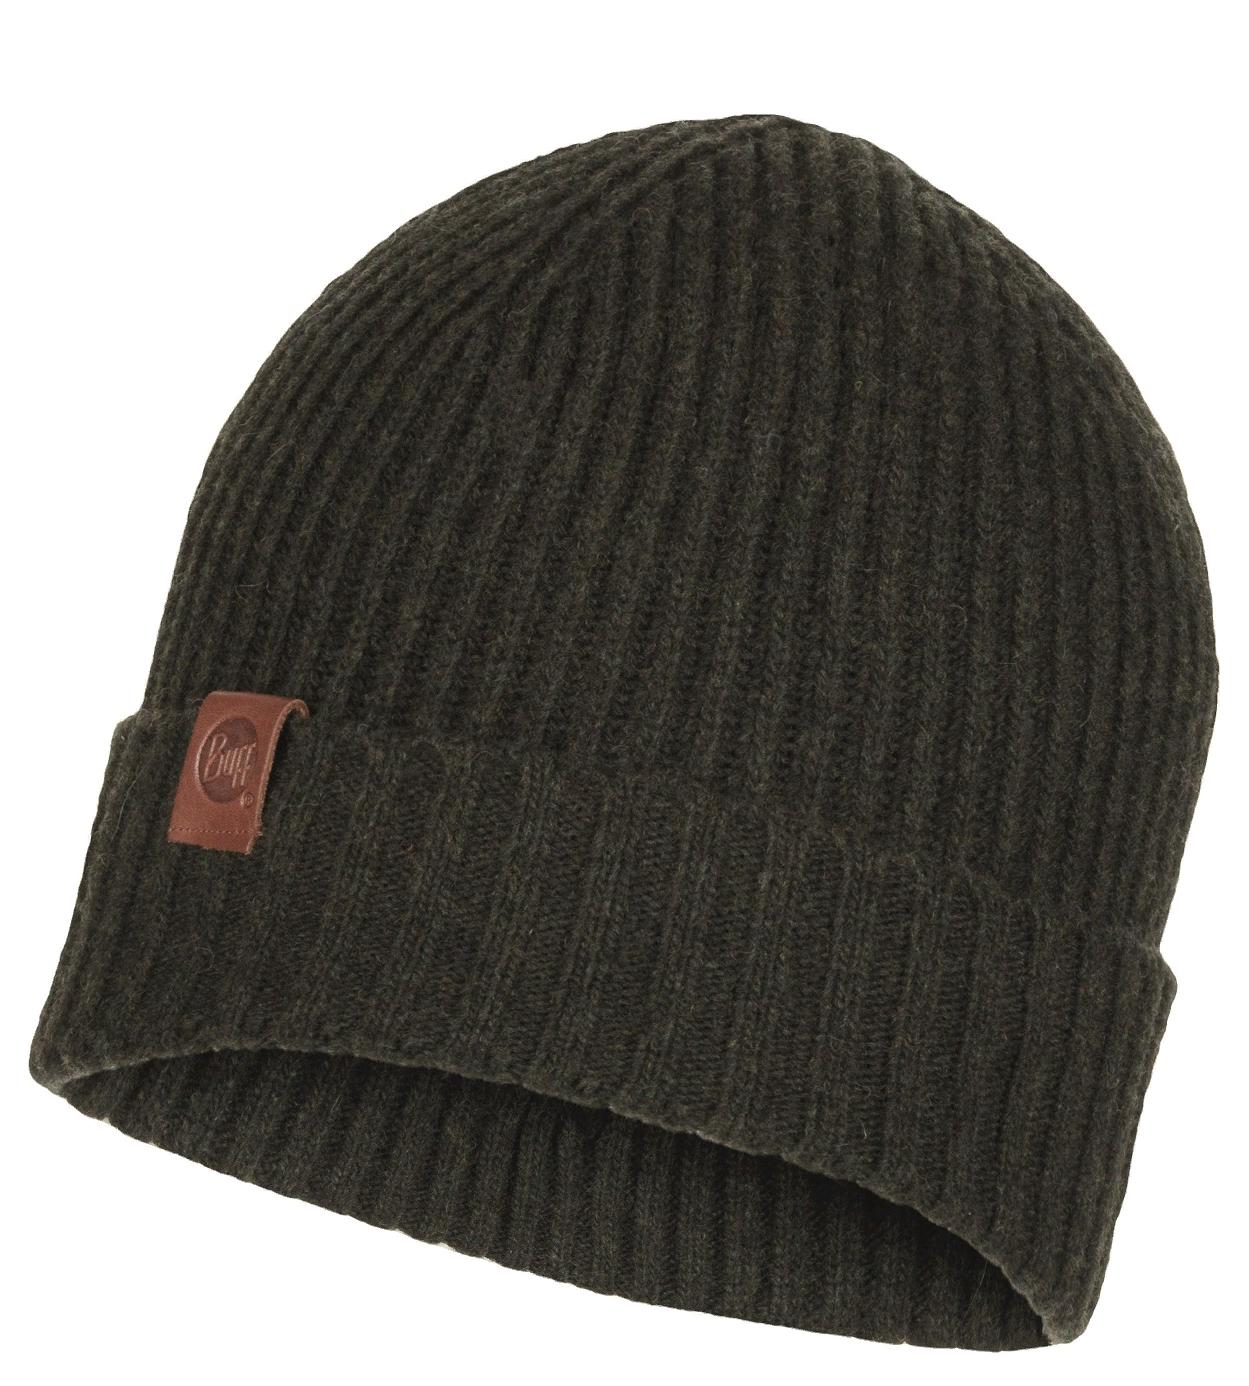 Шапка Buff Knitted Hat Biorn Military